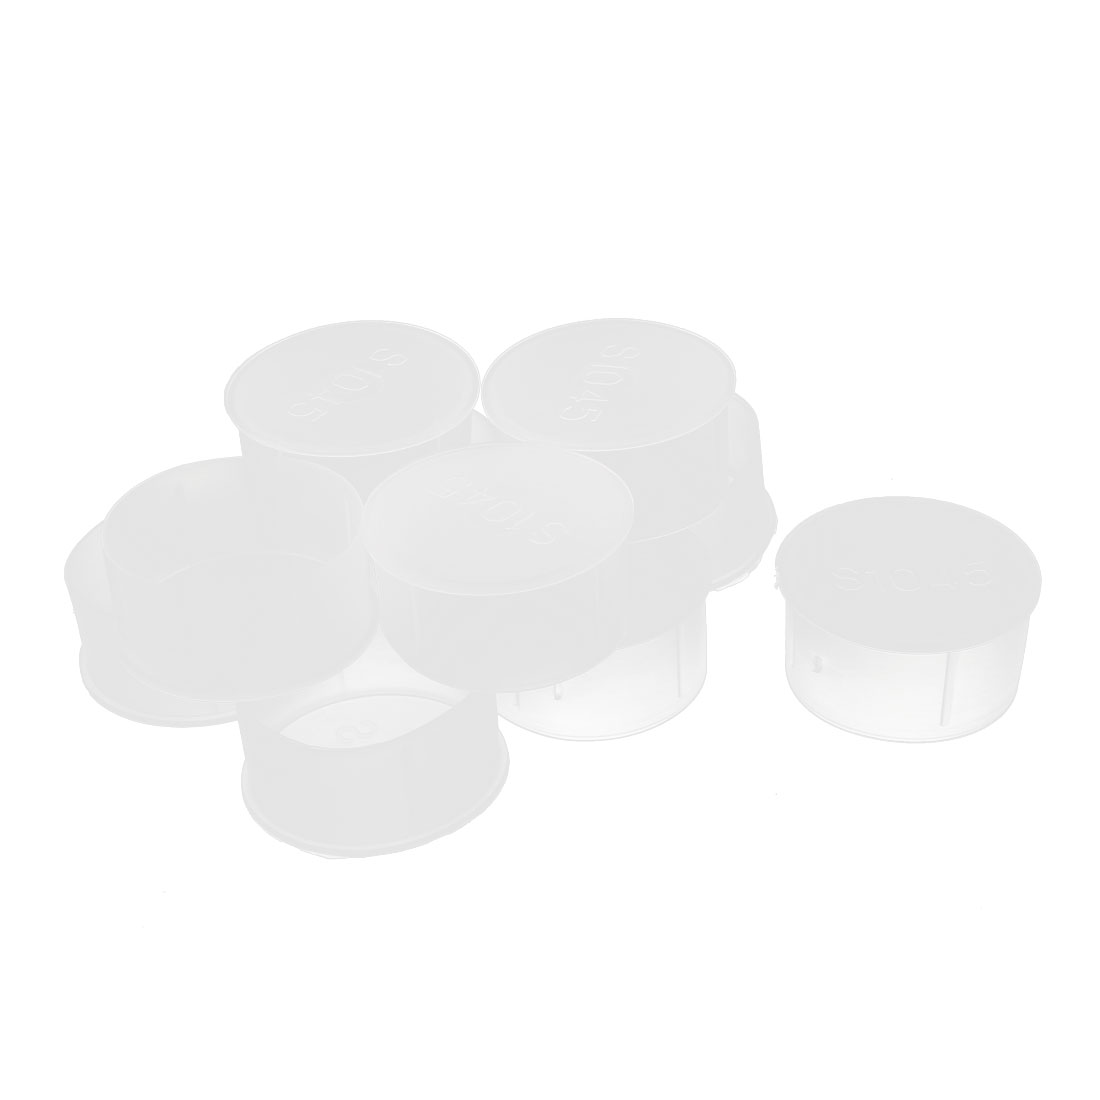 10Pcs 45mm Inner Dia PVC Insulated End Cap Wire Cable Tube Cover Protector